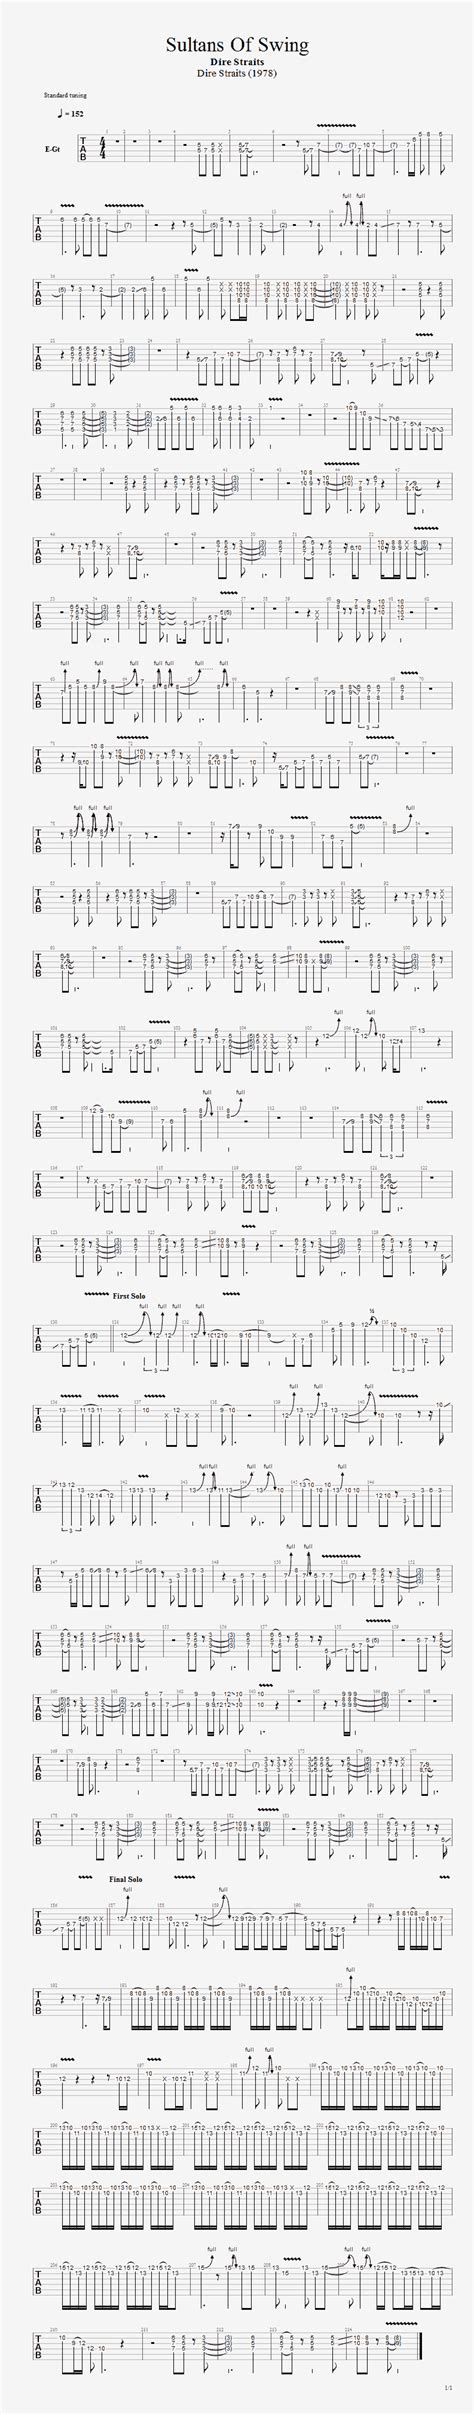 how to play sultans of swing sultans of swing guitar tab guitarnick